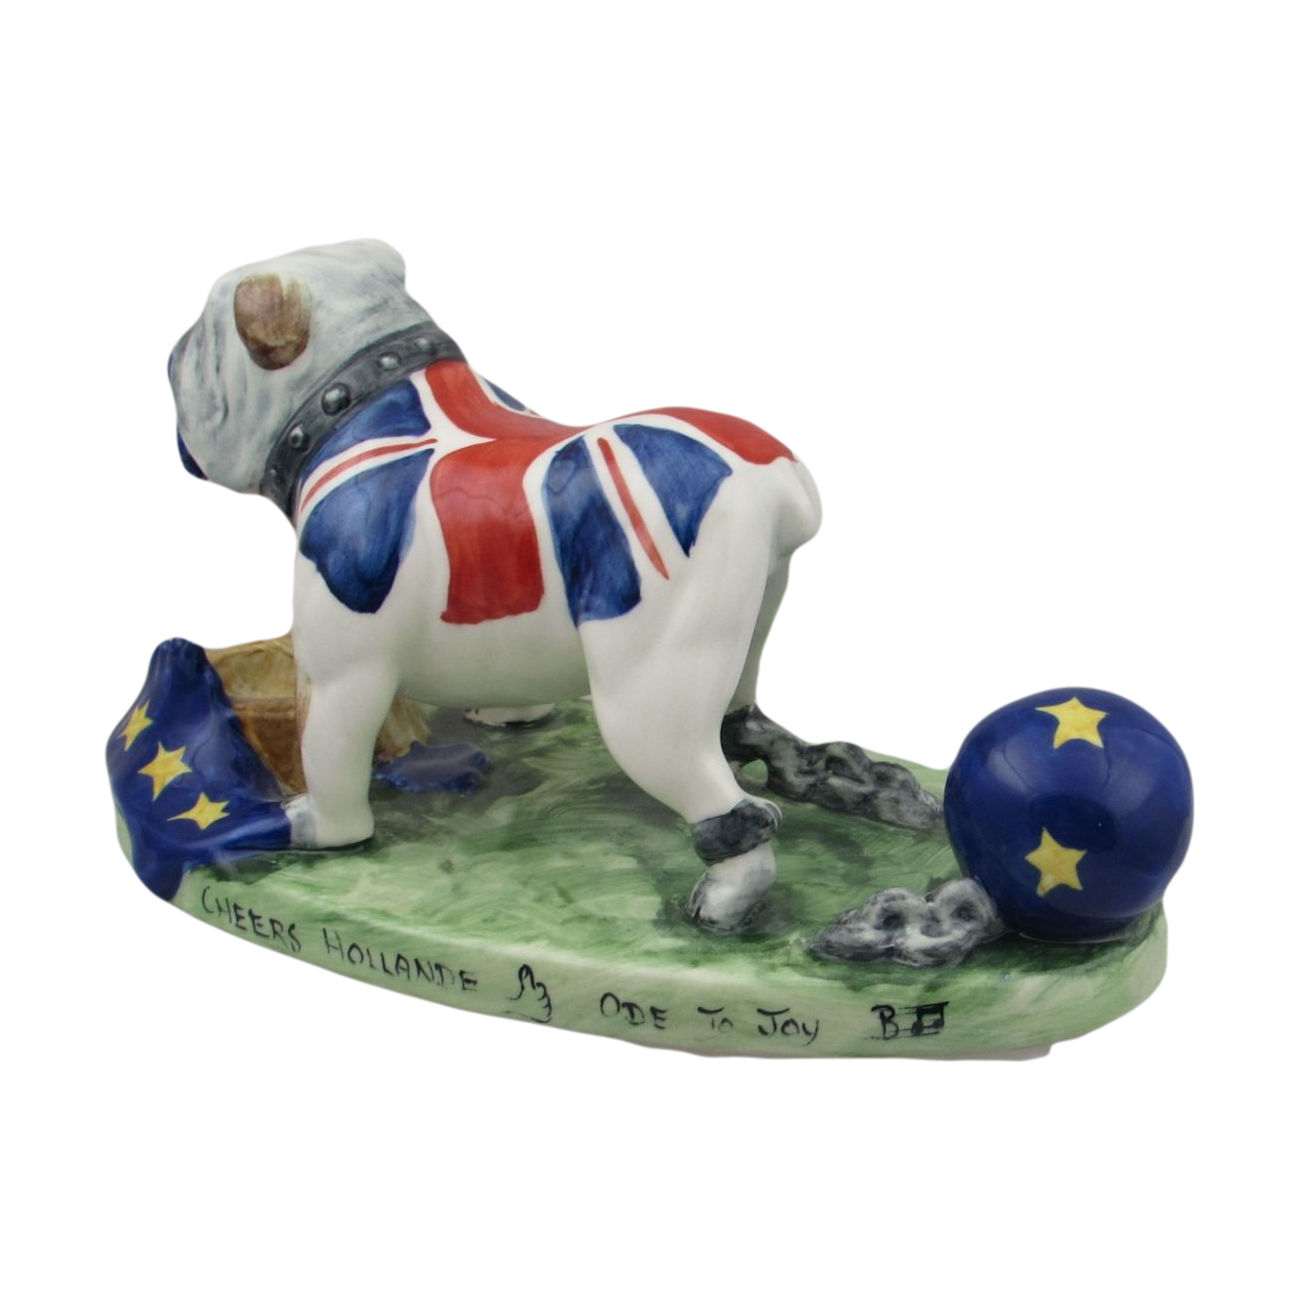 Brexit Bulldog Figure By Bairstow Pottery Collectables Stoke Art Pottery